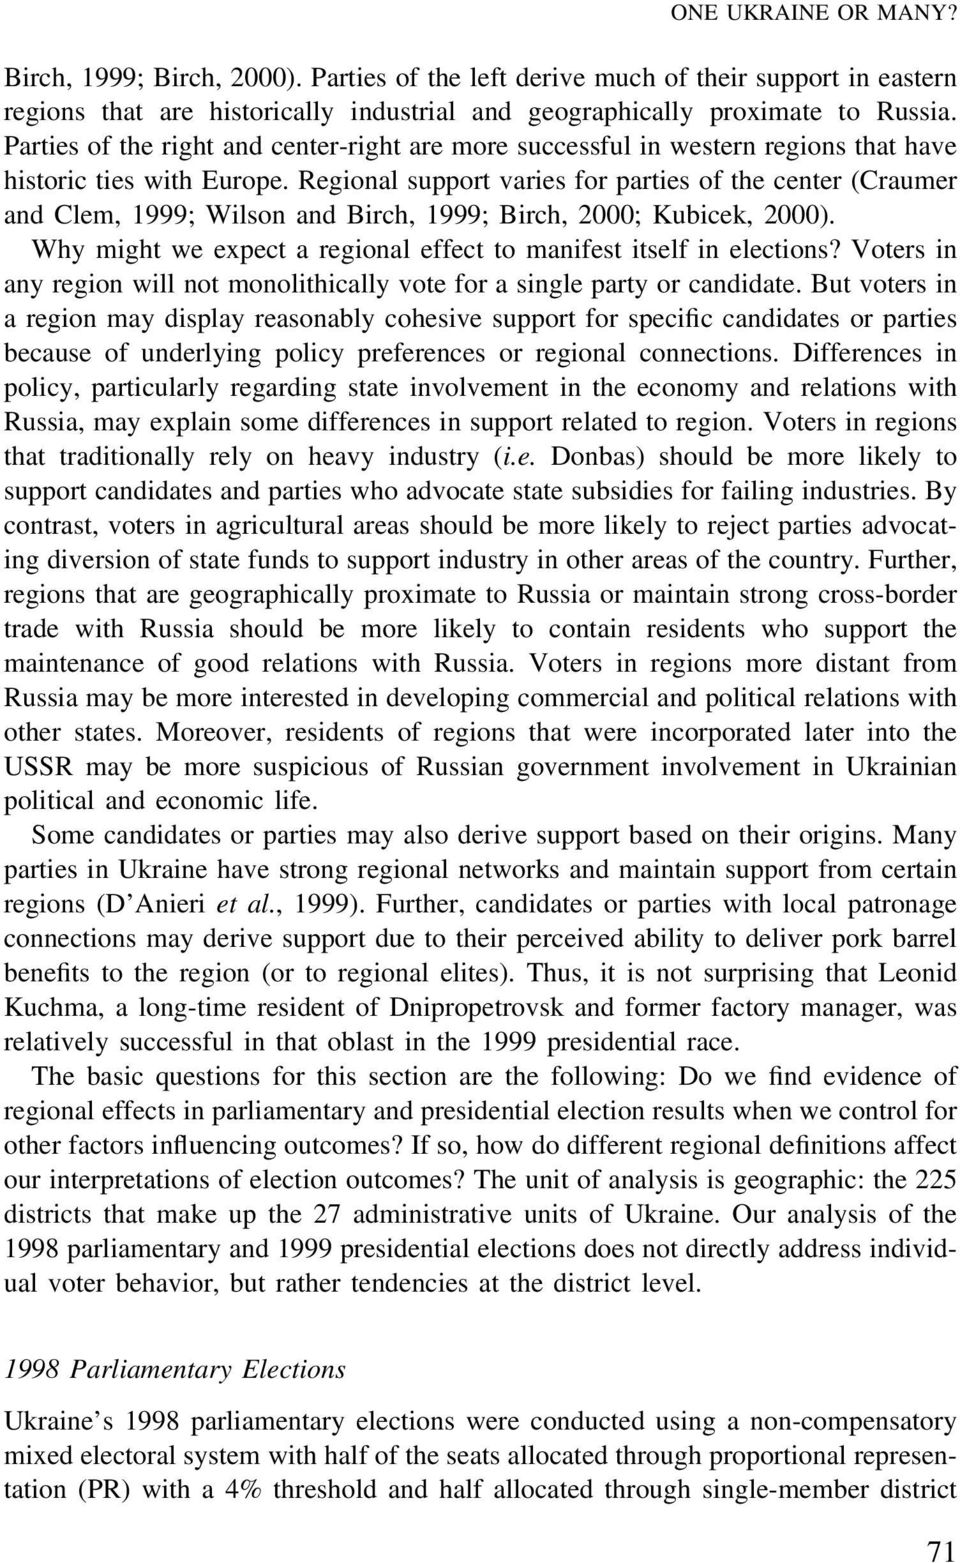 Regional support varies for parties of the center (Craumer and Clem, 1999; Wilson and Birch, 1999; Birch, 2000; Kubicek, 2000). Why might we expect a regional effect to manifest itself in elections?